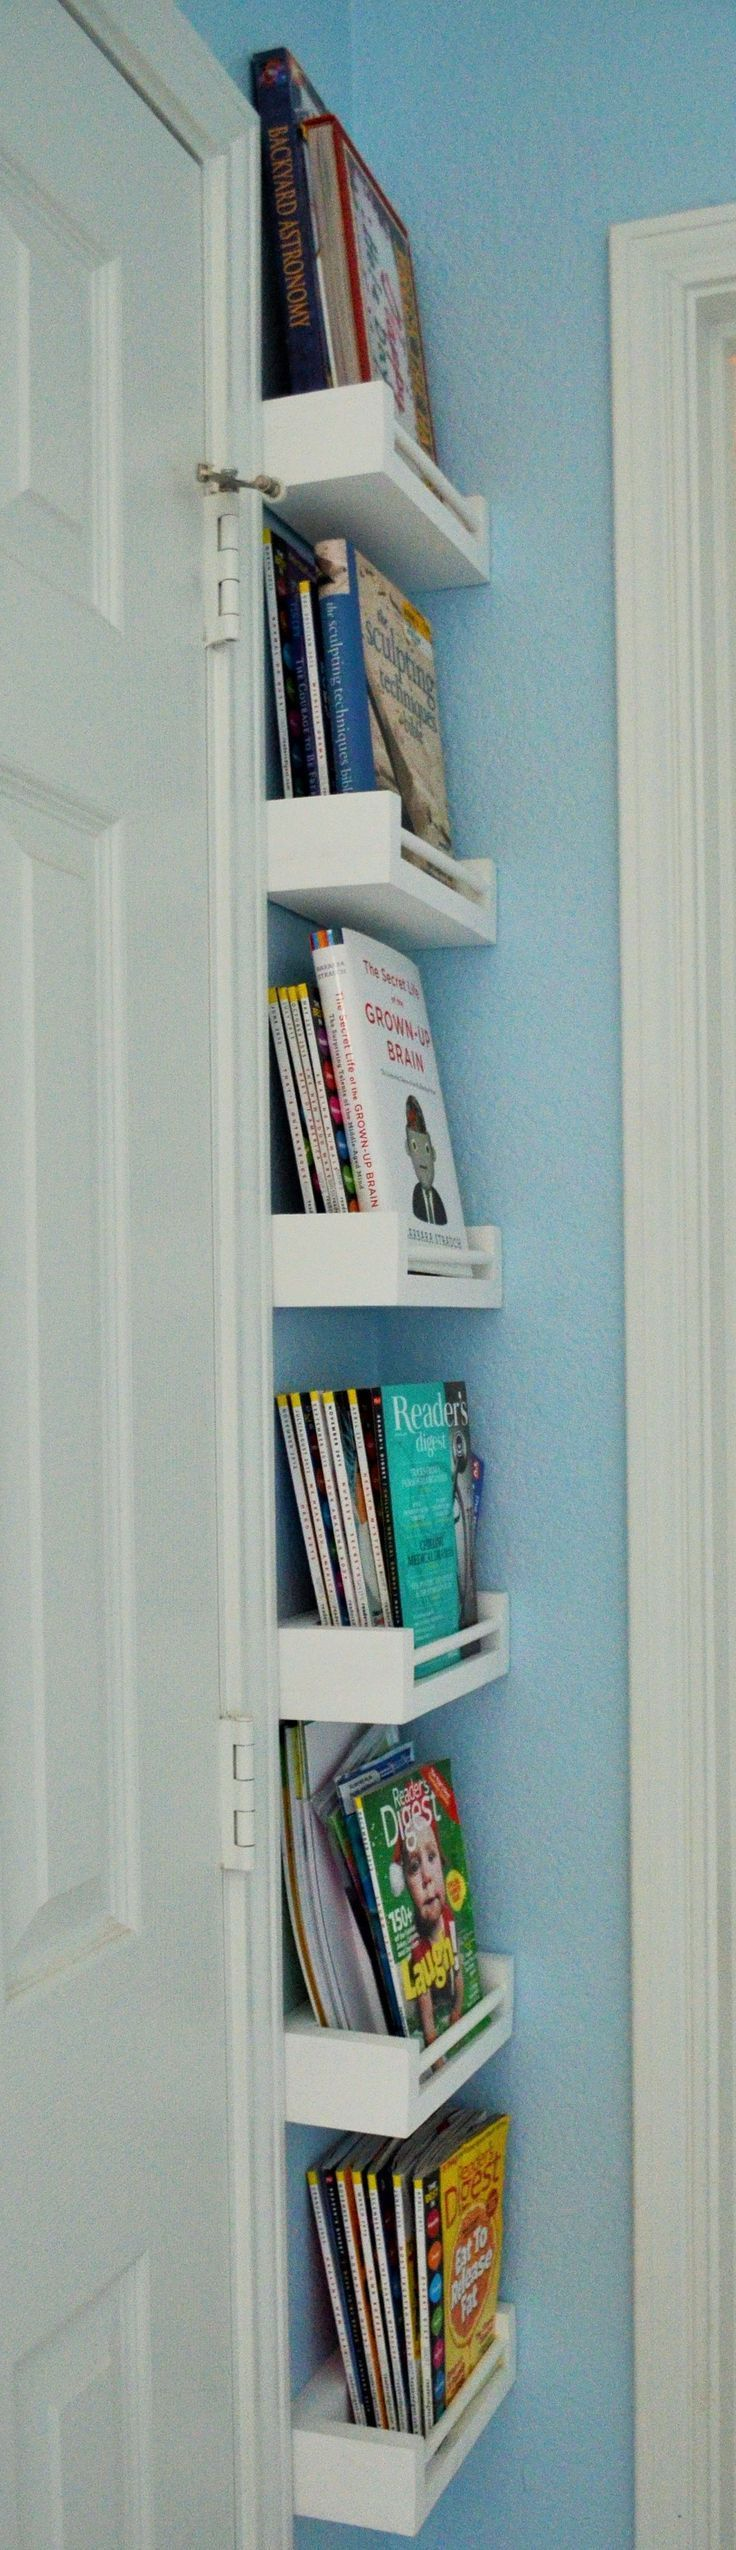 Kids Bedroom Shelving Best 25 Kids Room Shelves Ideas On Pinterest Kids Shelf